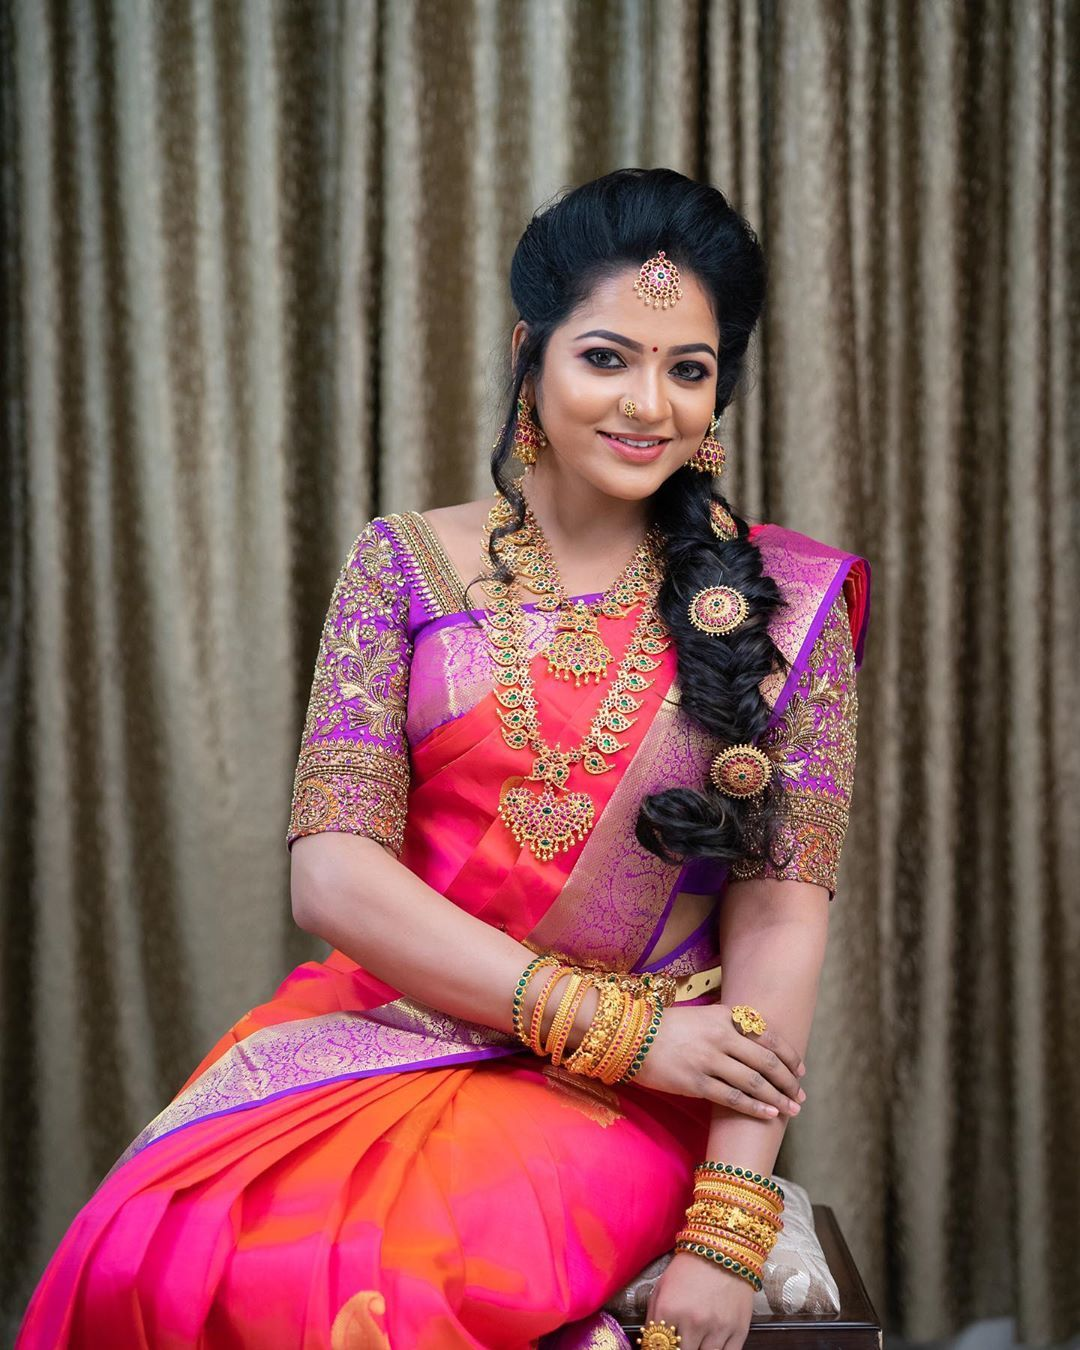 chithu vj instagram photos